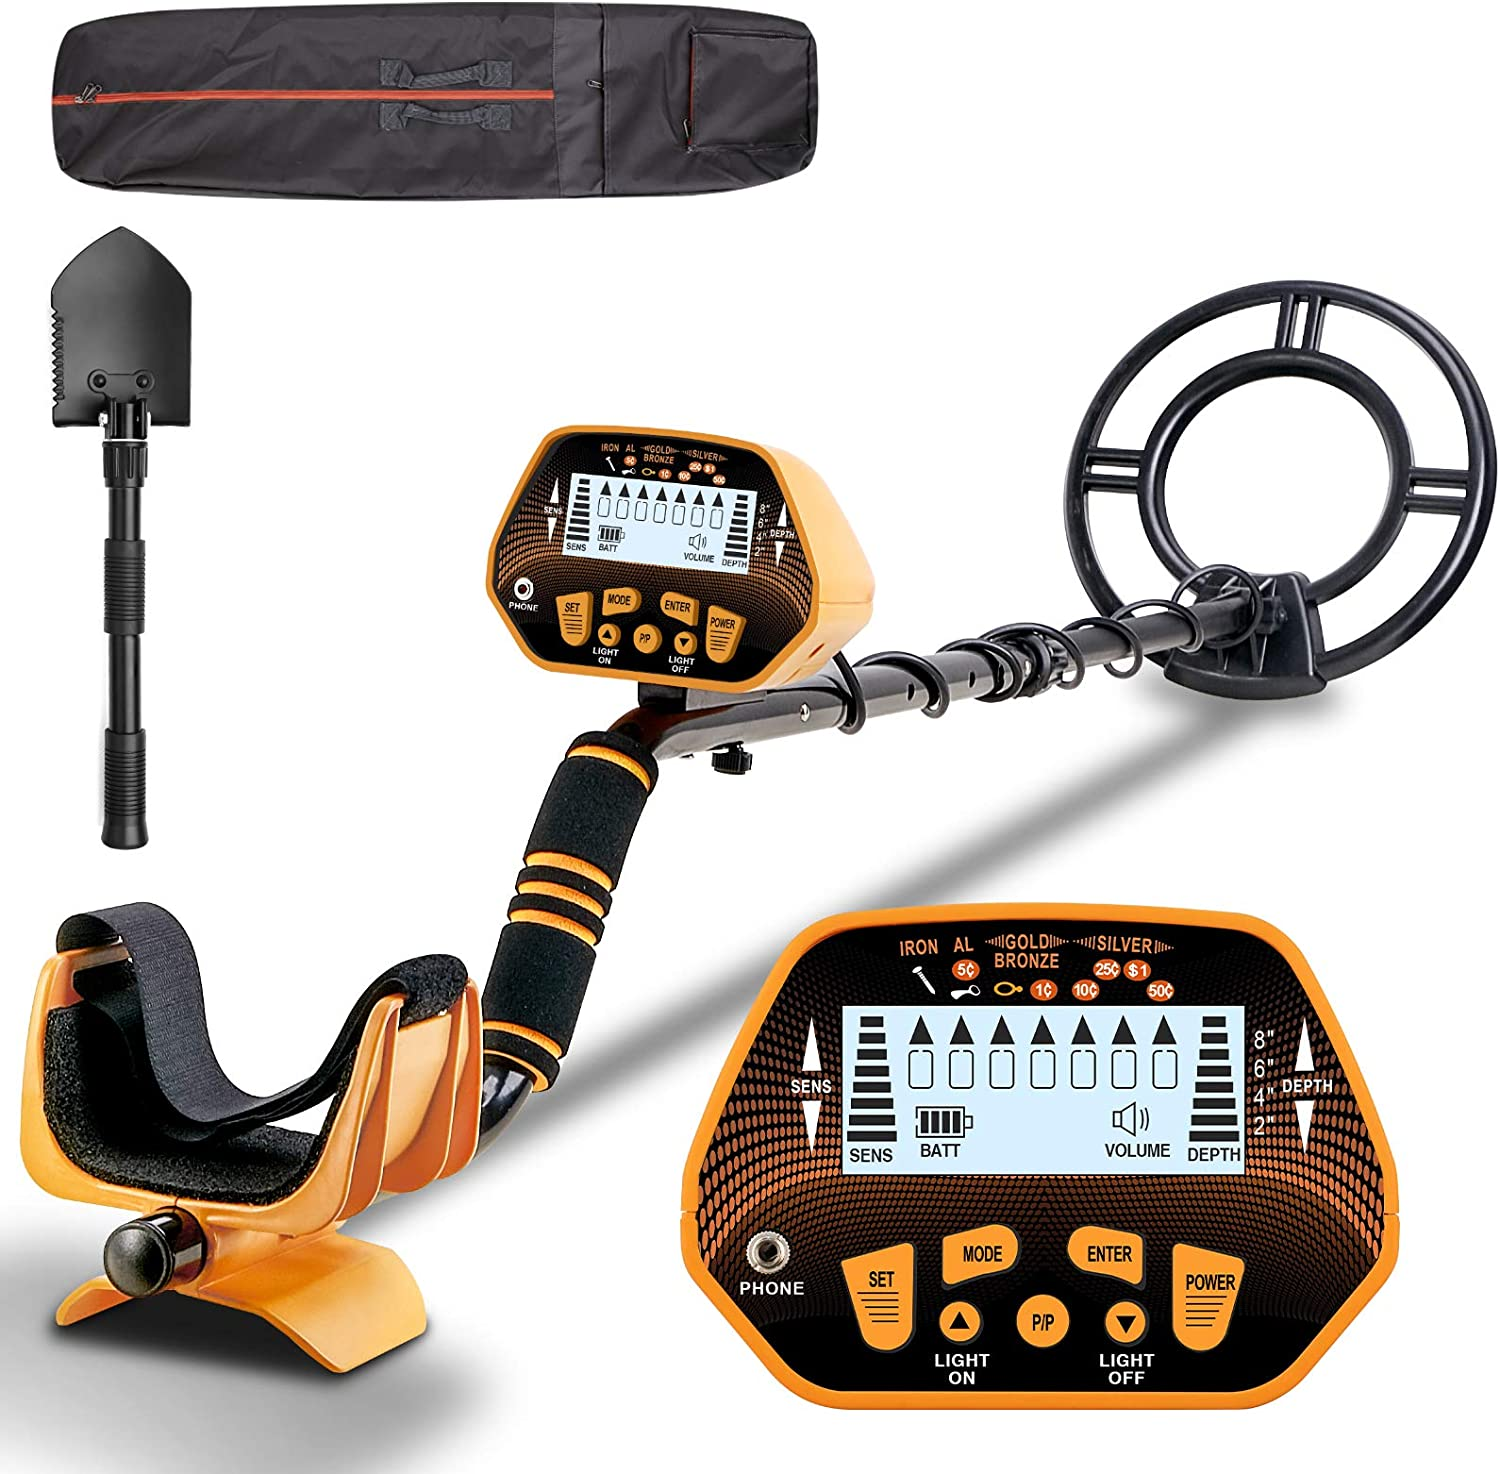 Esright Accurate Metal Detector with LCD Display Adjustable Height for Adults /& Kids Gold Detector with 10in Waterproof Sensitive Search Coil P//P /& Disc Modes